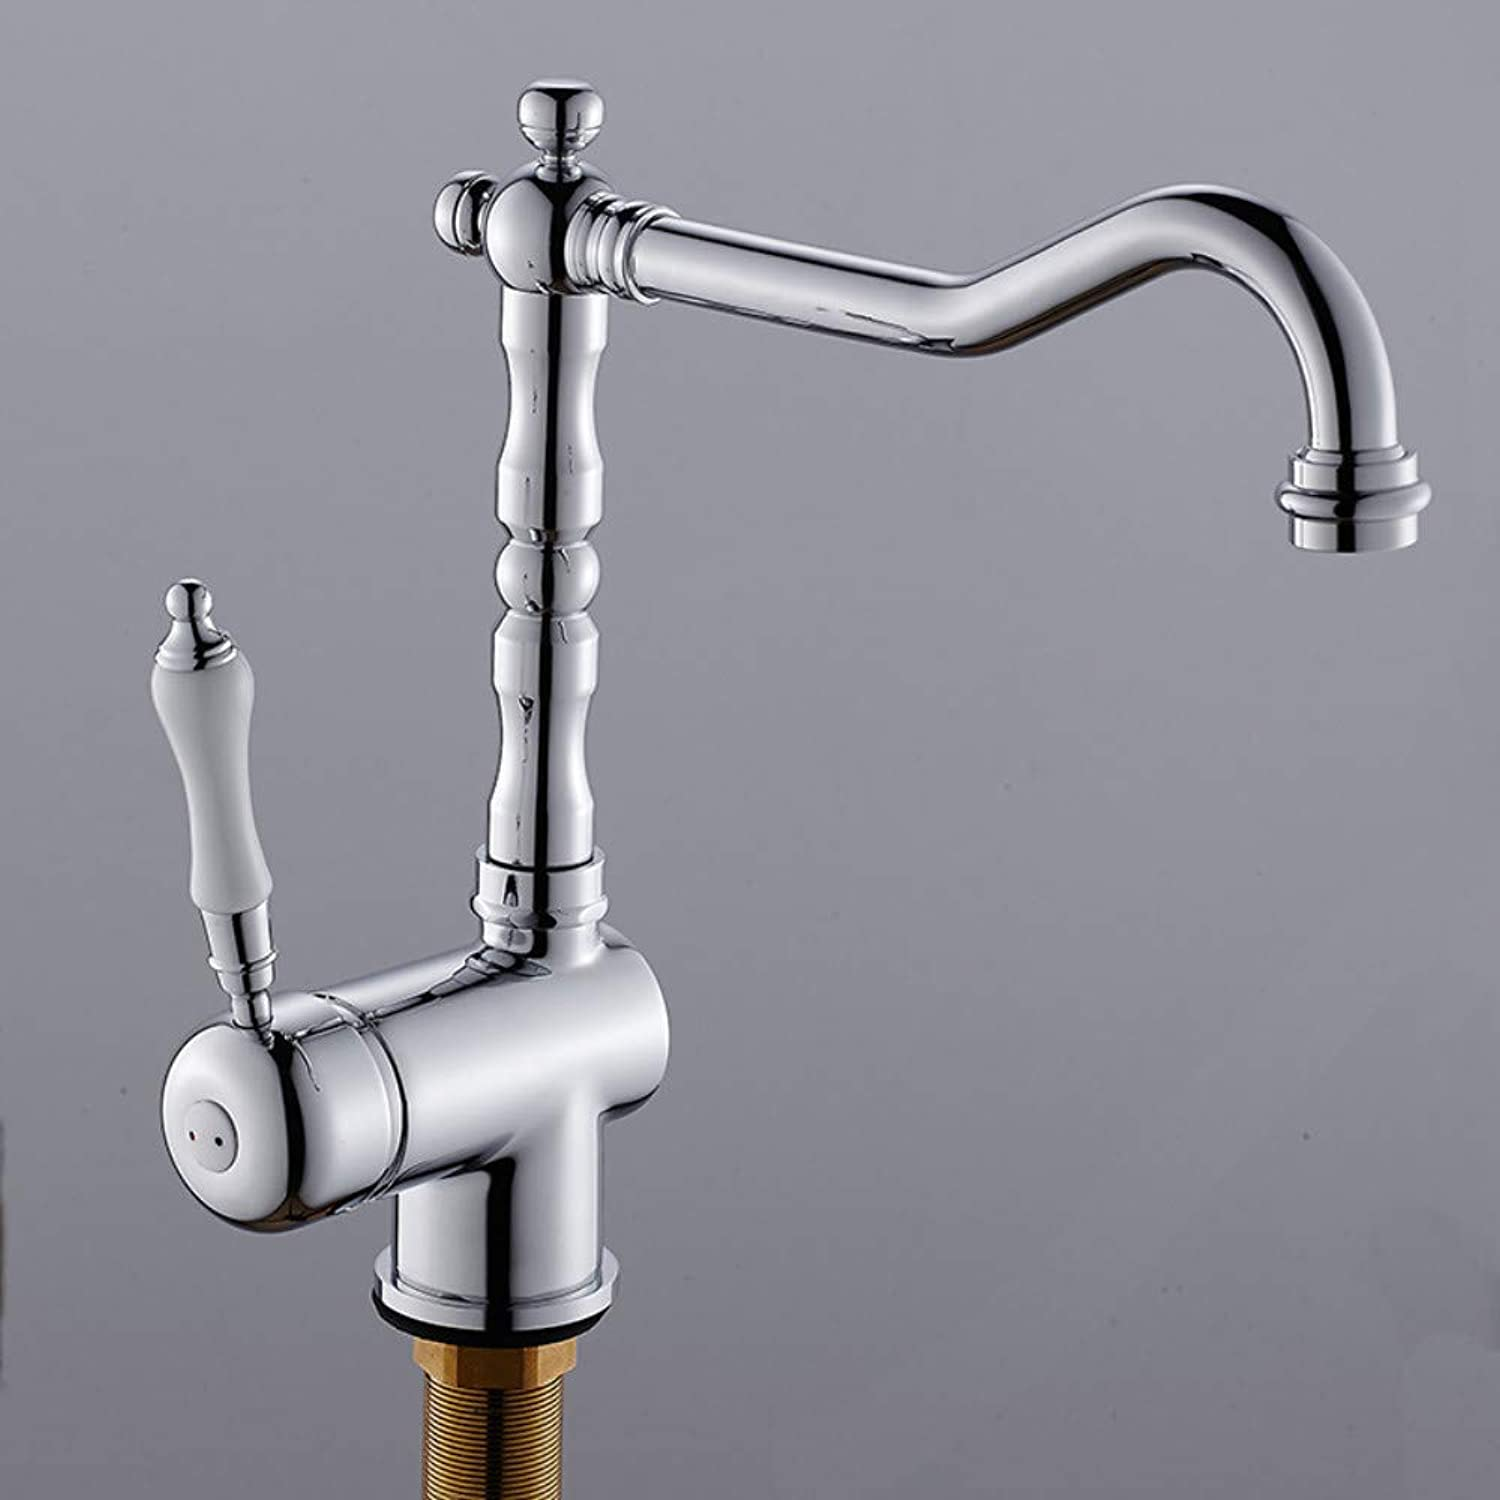 Kitchen Sink Tapsbathroom Sink Tapseuropean Kitchen Faucet Kitchen 360 Degree redating Faucet Above Counter Basin Faucet